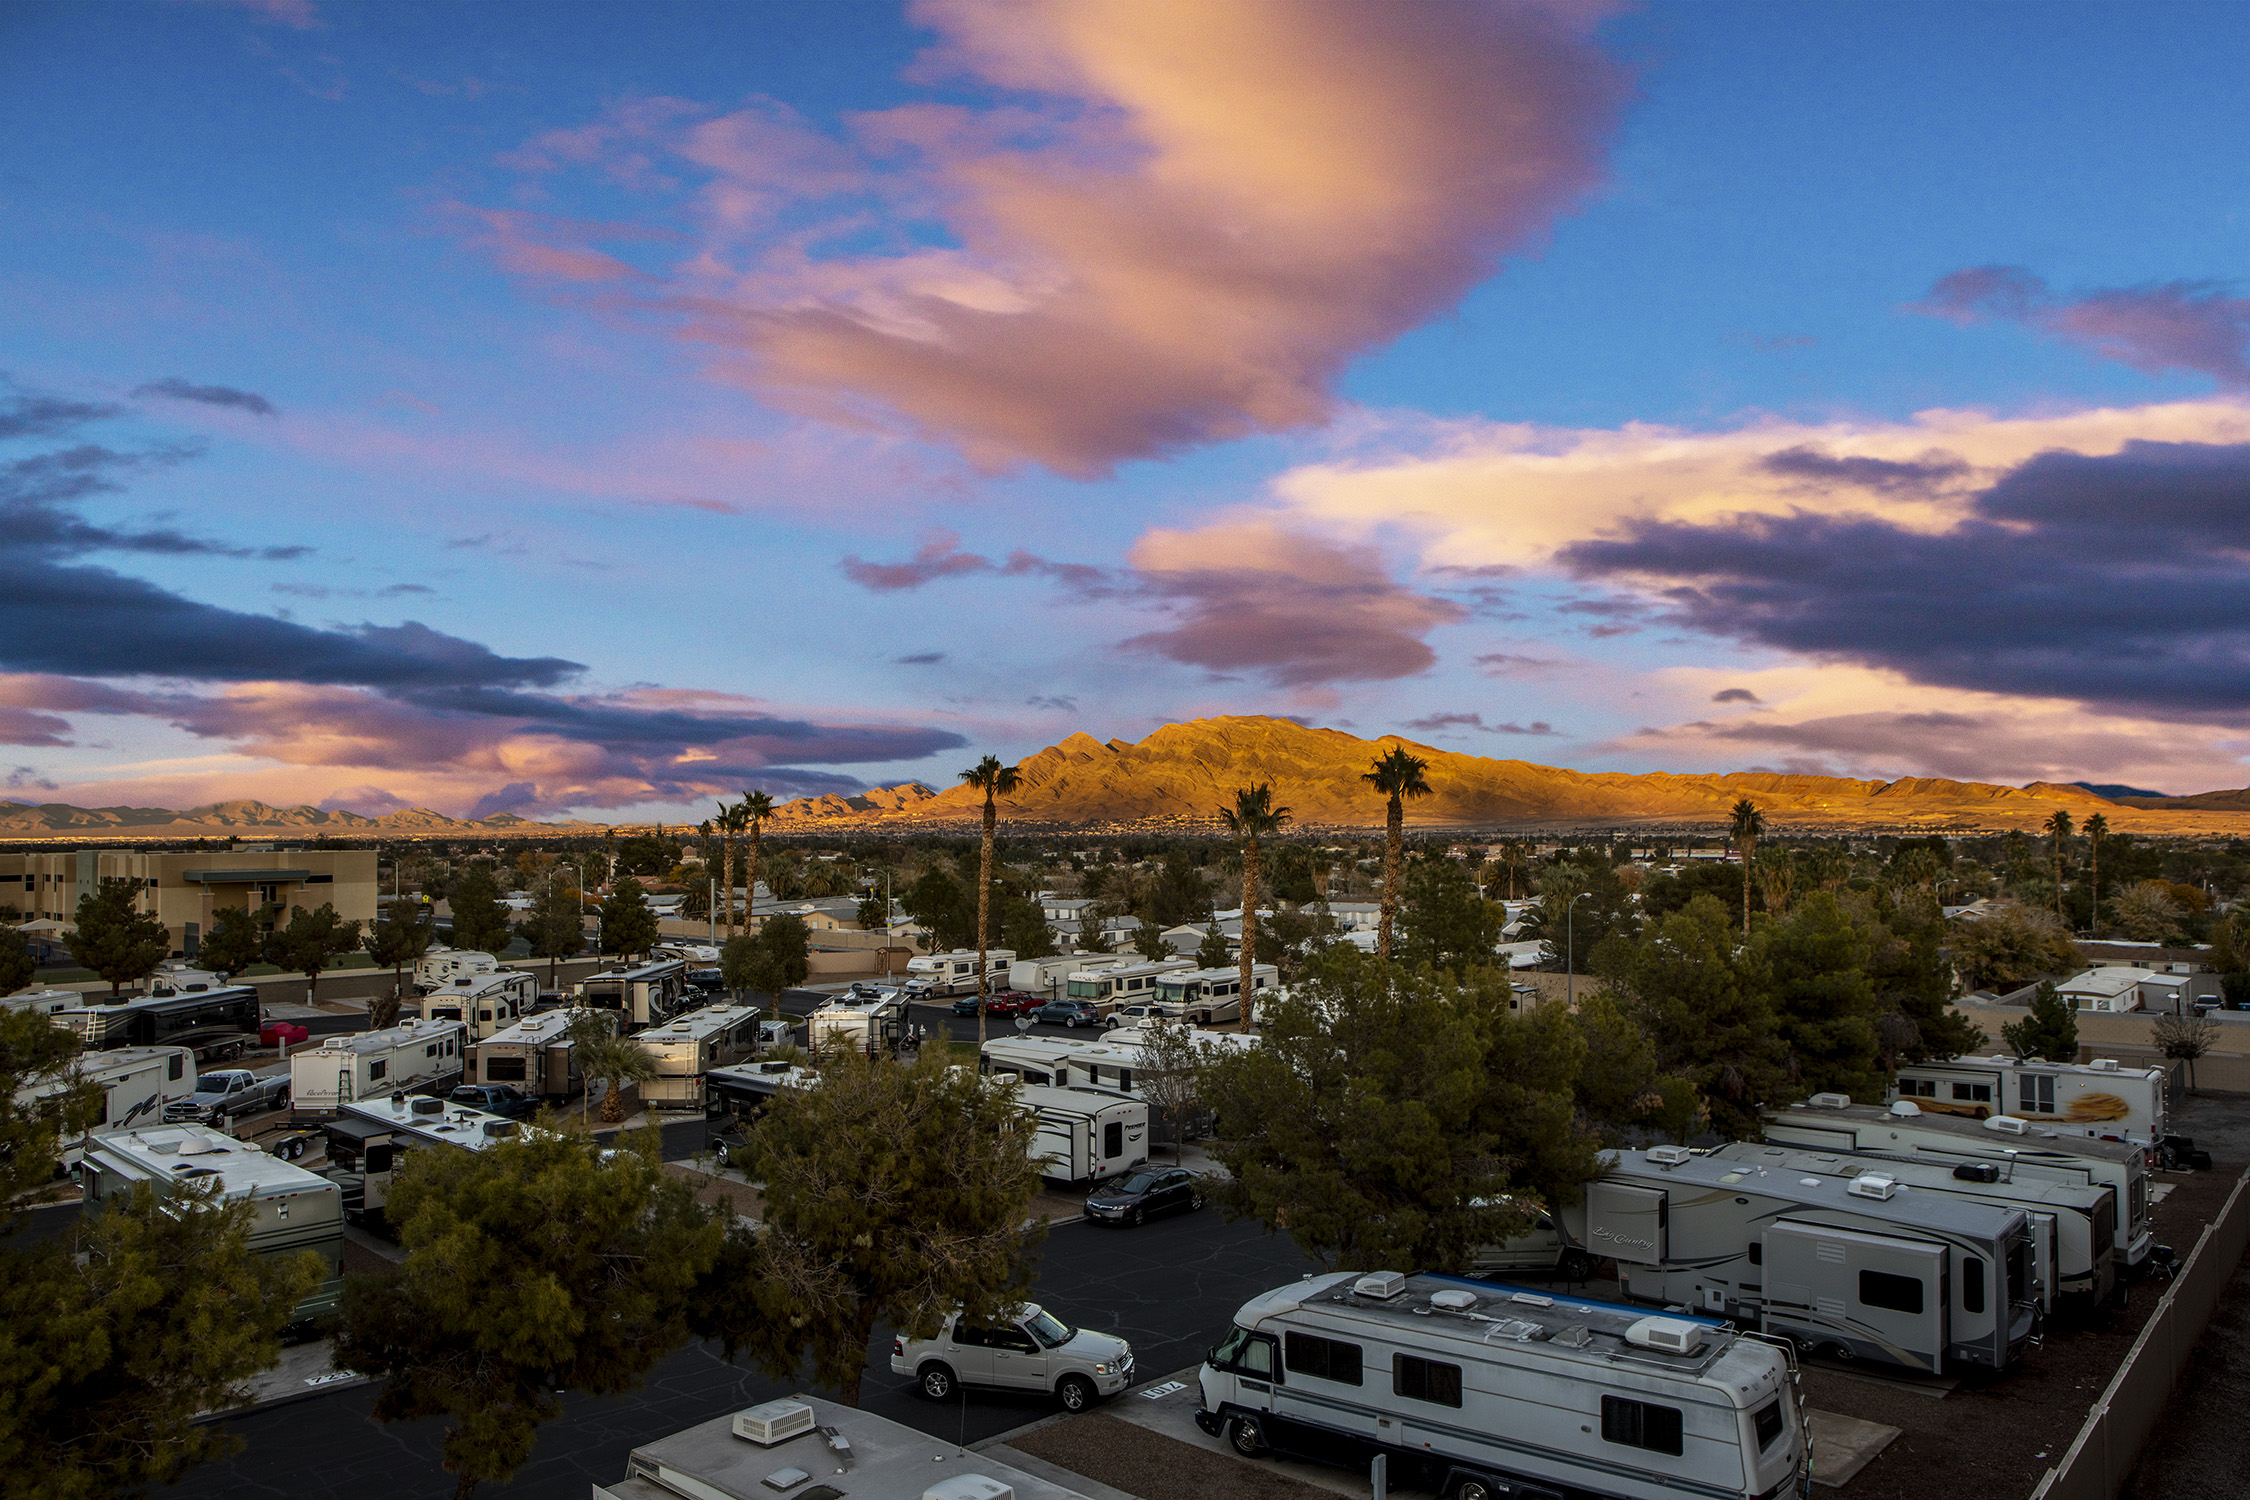 Aerial view of RV park in desert setting.